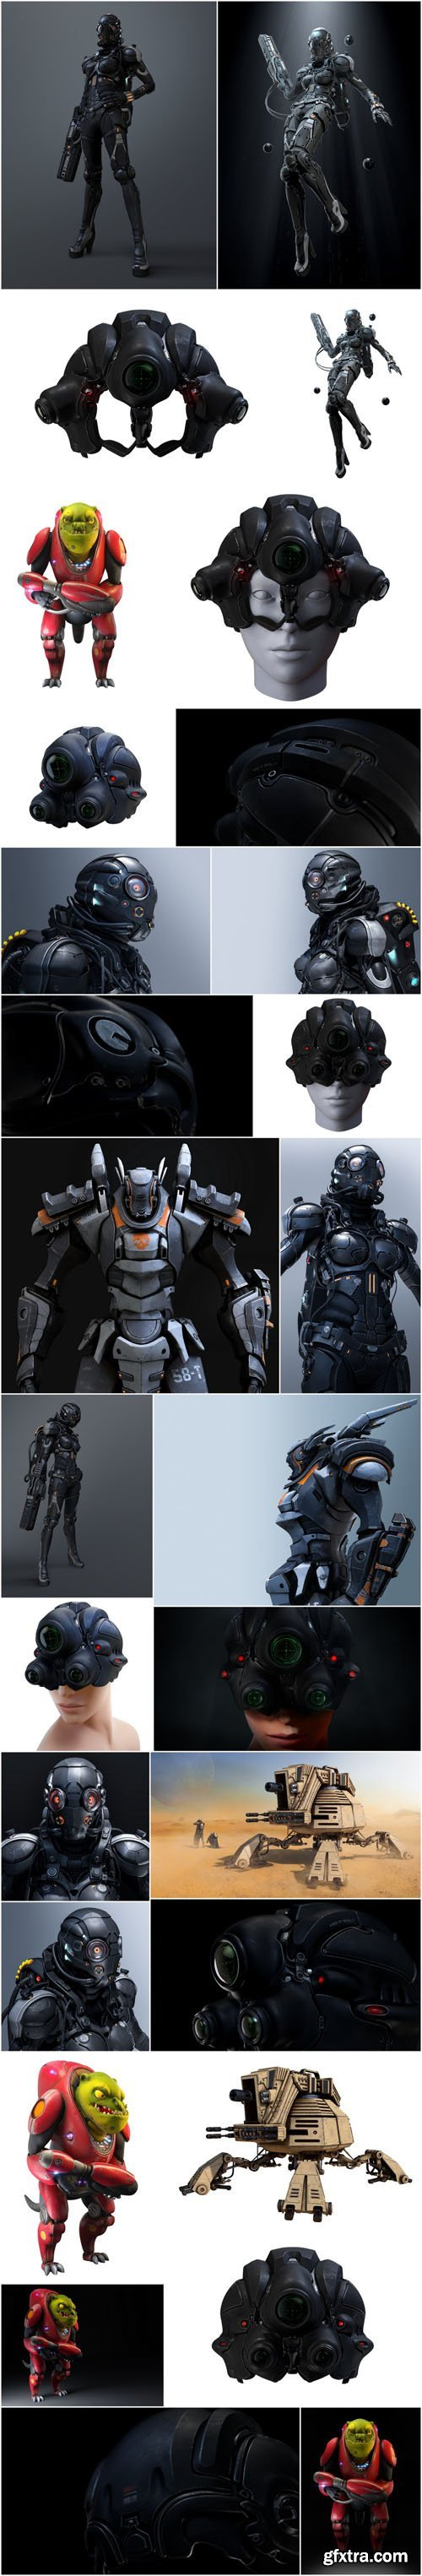 3D rendering cyborg girl, robot and space pirate - Set of 28xUHQ JPEG